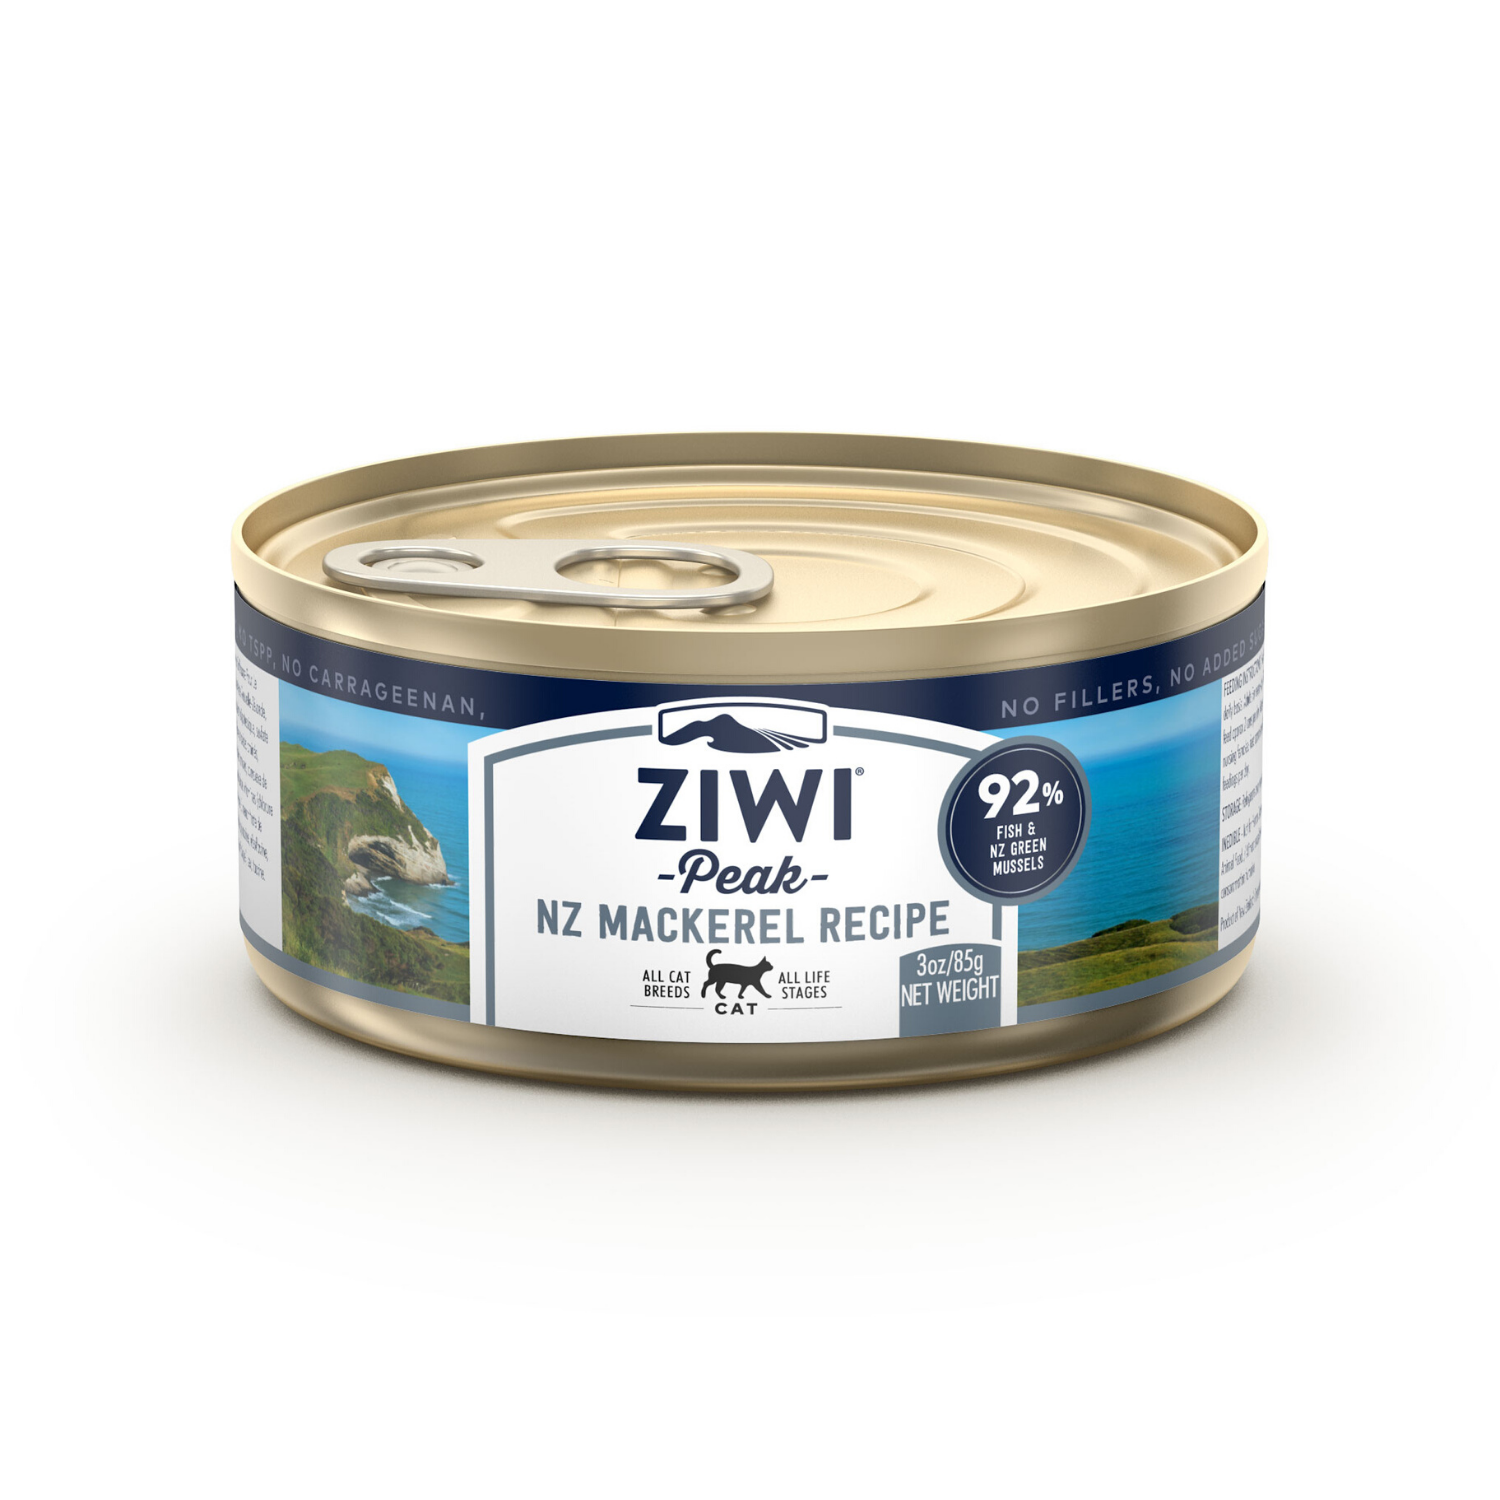 ZIWI Peak (Mackerel) Canned Cat Food - 12 Cans x 85g / 185g